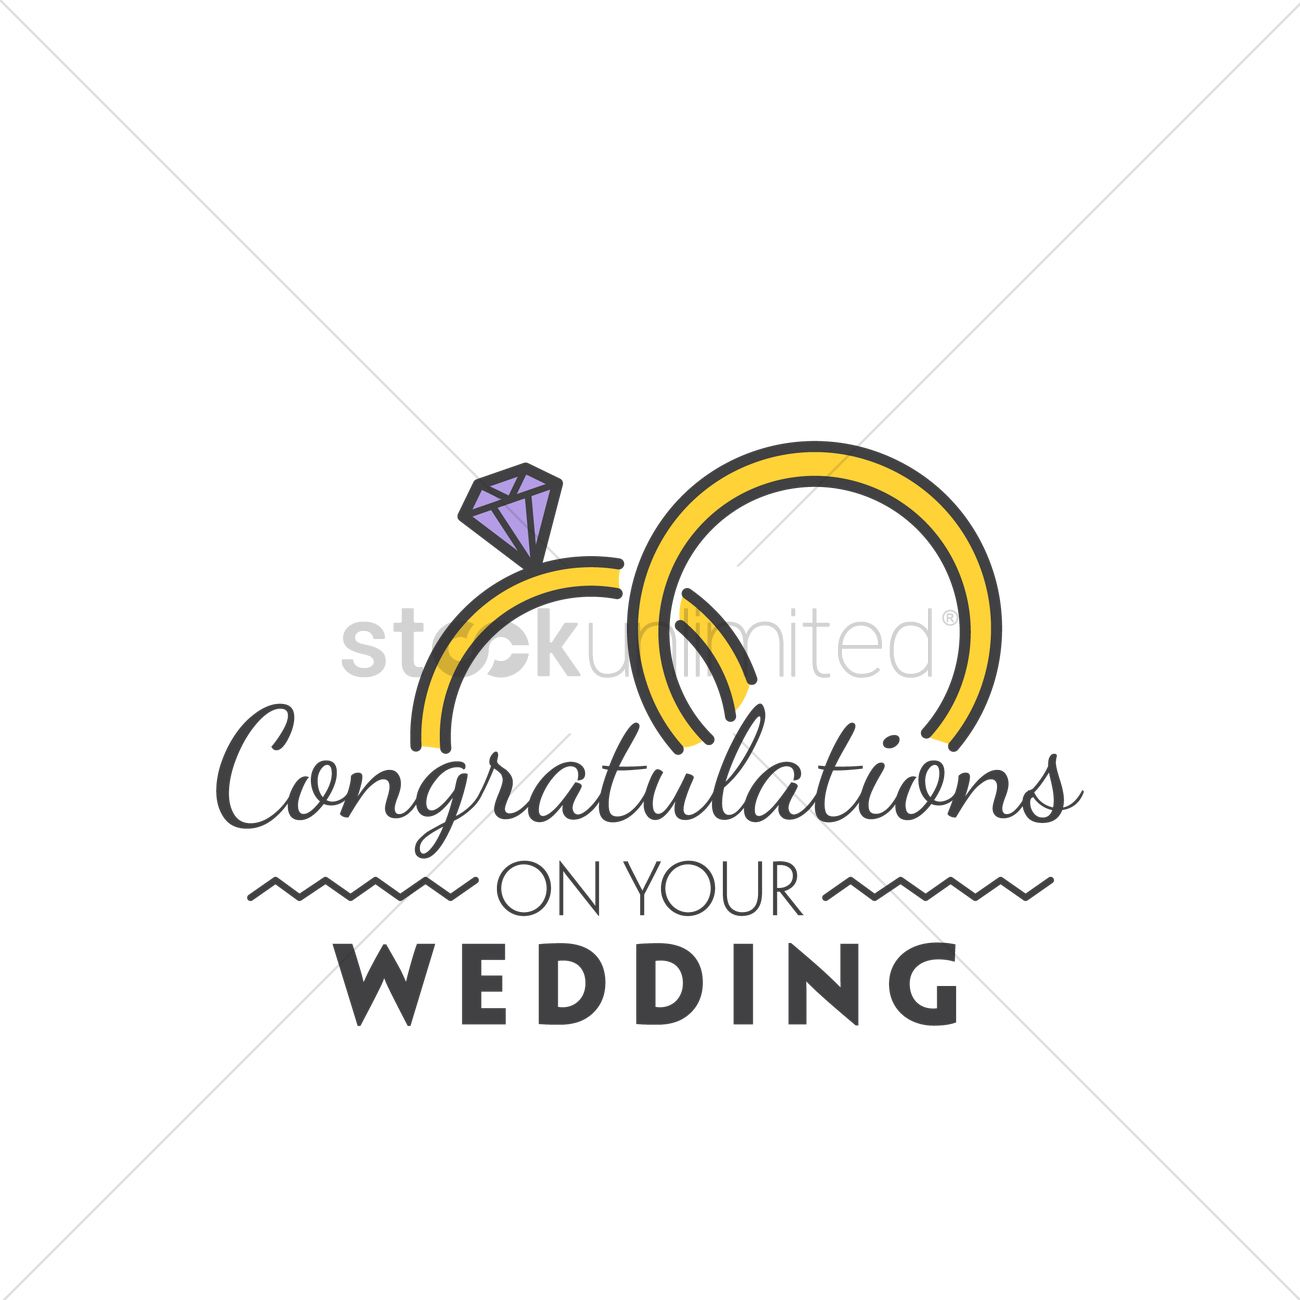 1300x1300 Congratulations On Your Wedding Vector Image